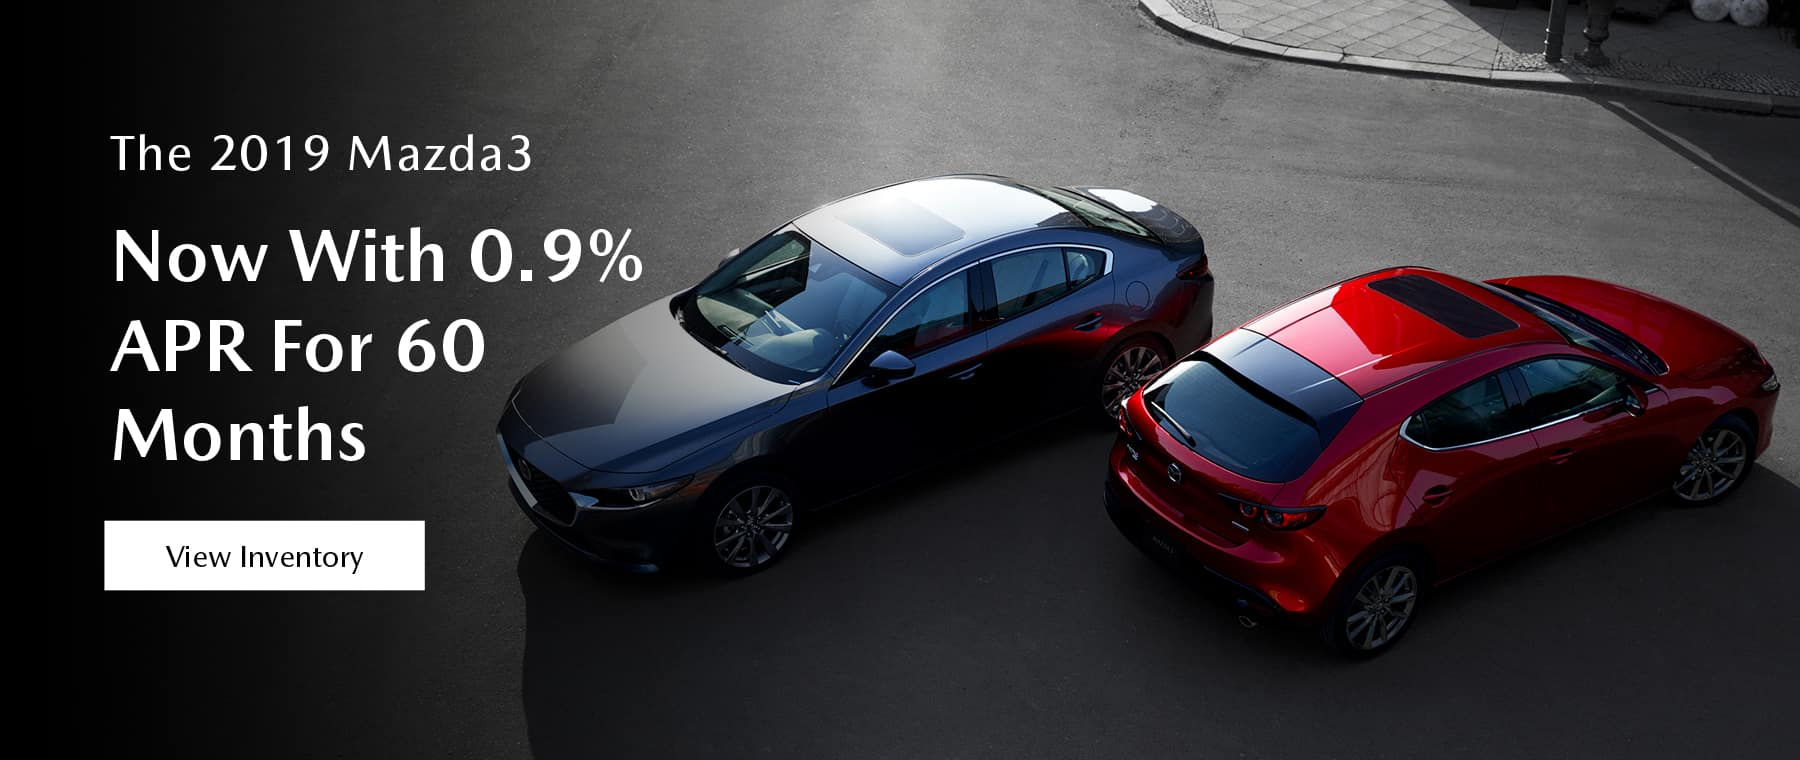 The 2019 Mazda3. Now With 0.9% APR For 60 Months.